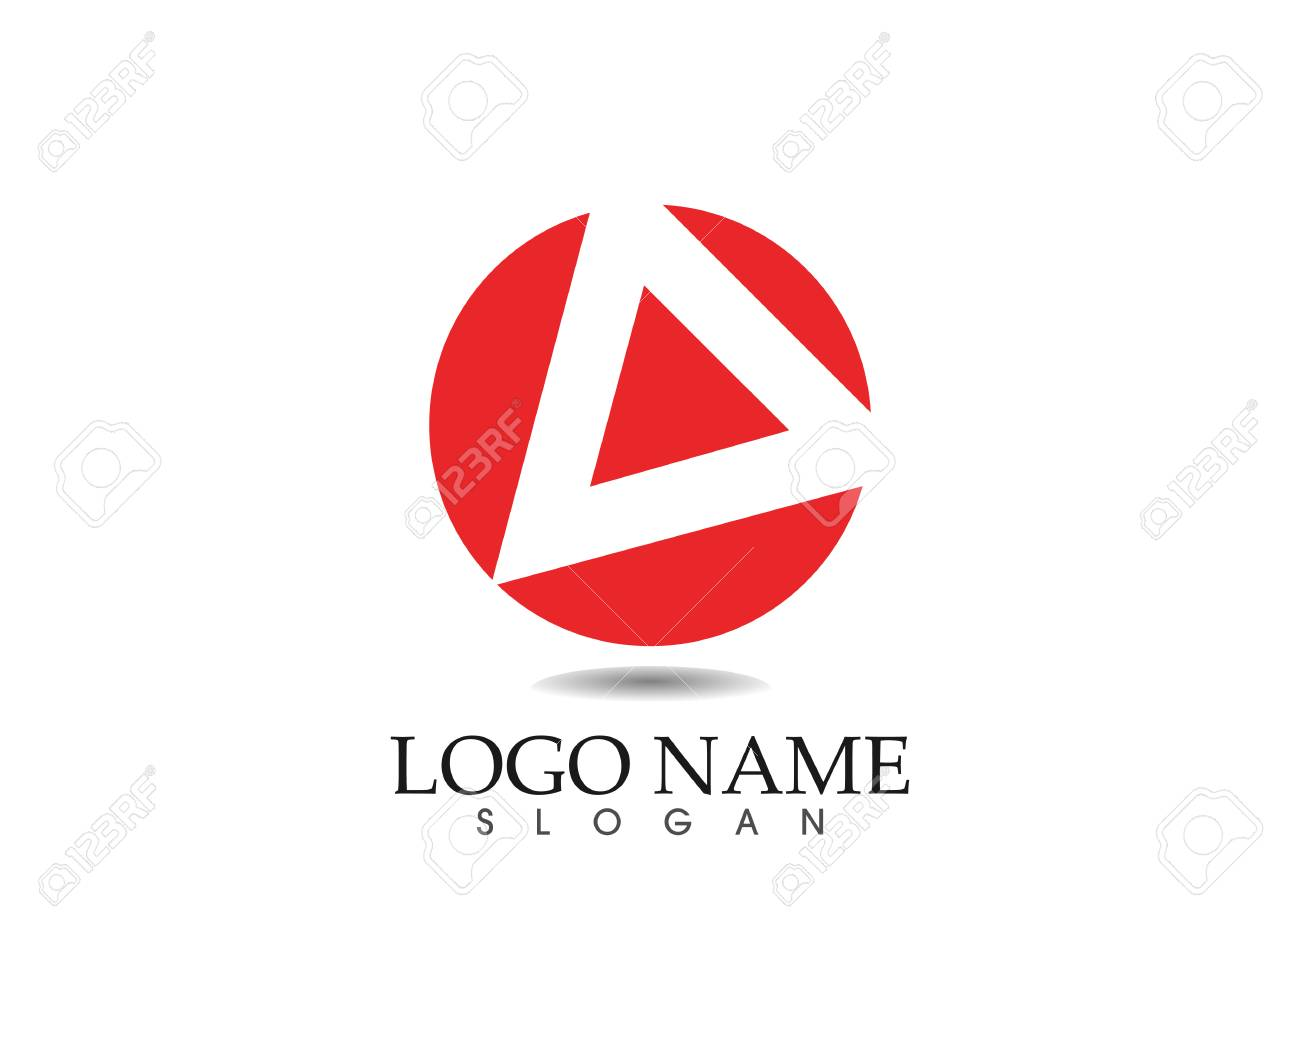 Business Logo Design App Free: Business Abstract Logo Design Template Icons App Royalty Free rh:123rf.com,Design